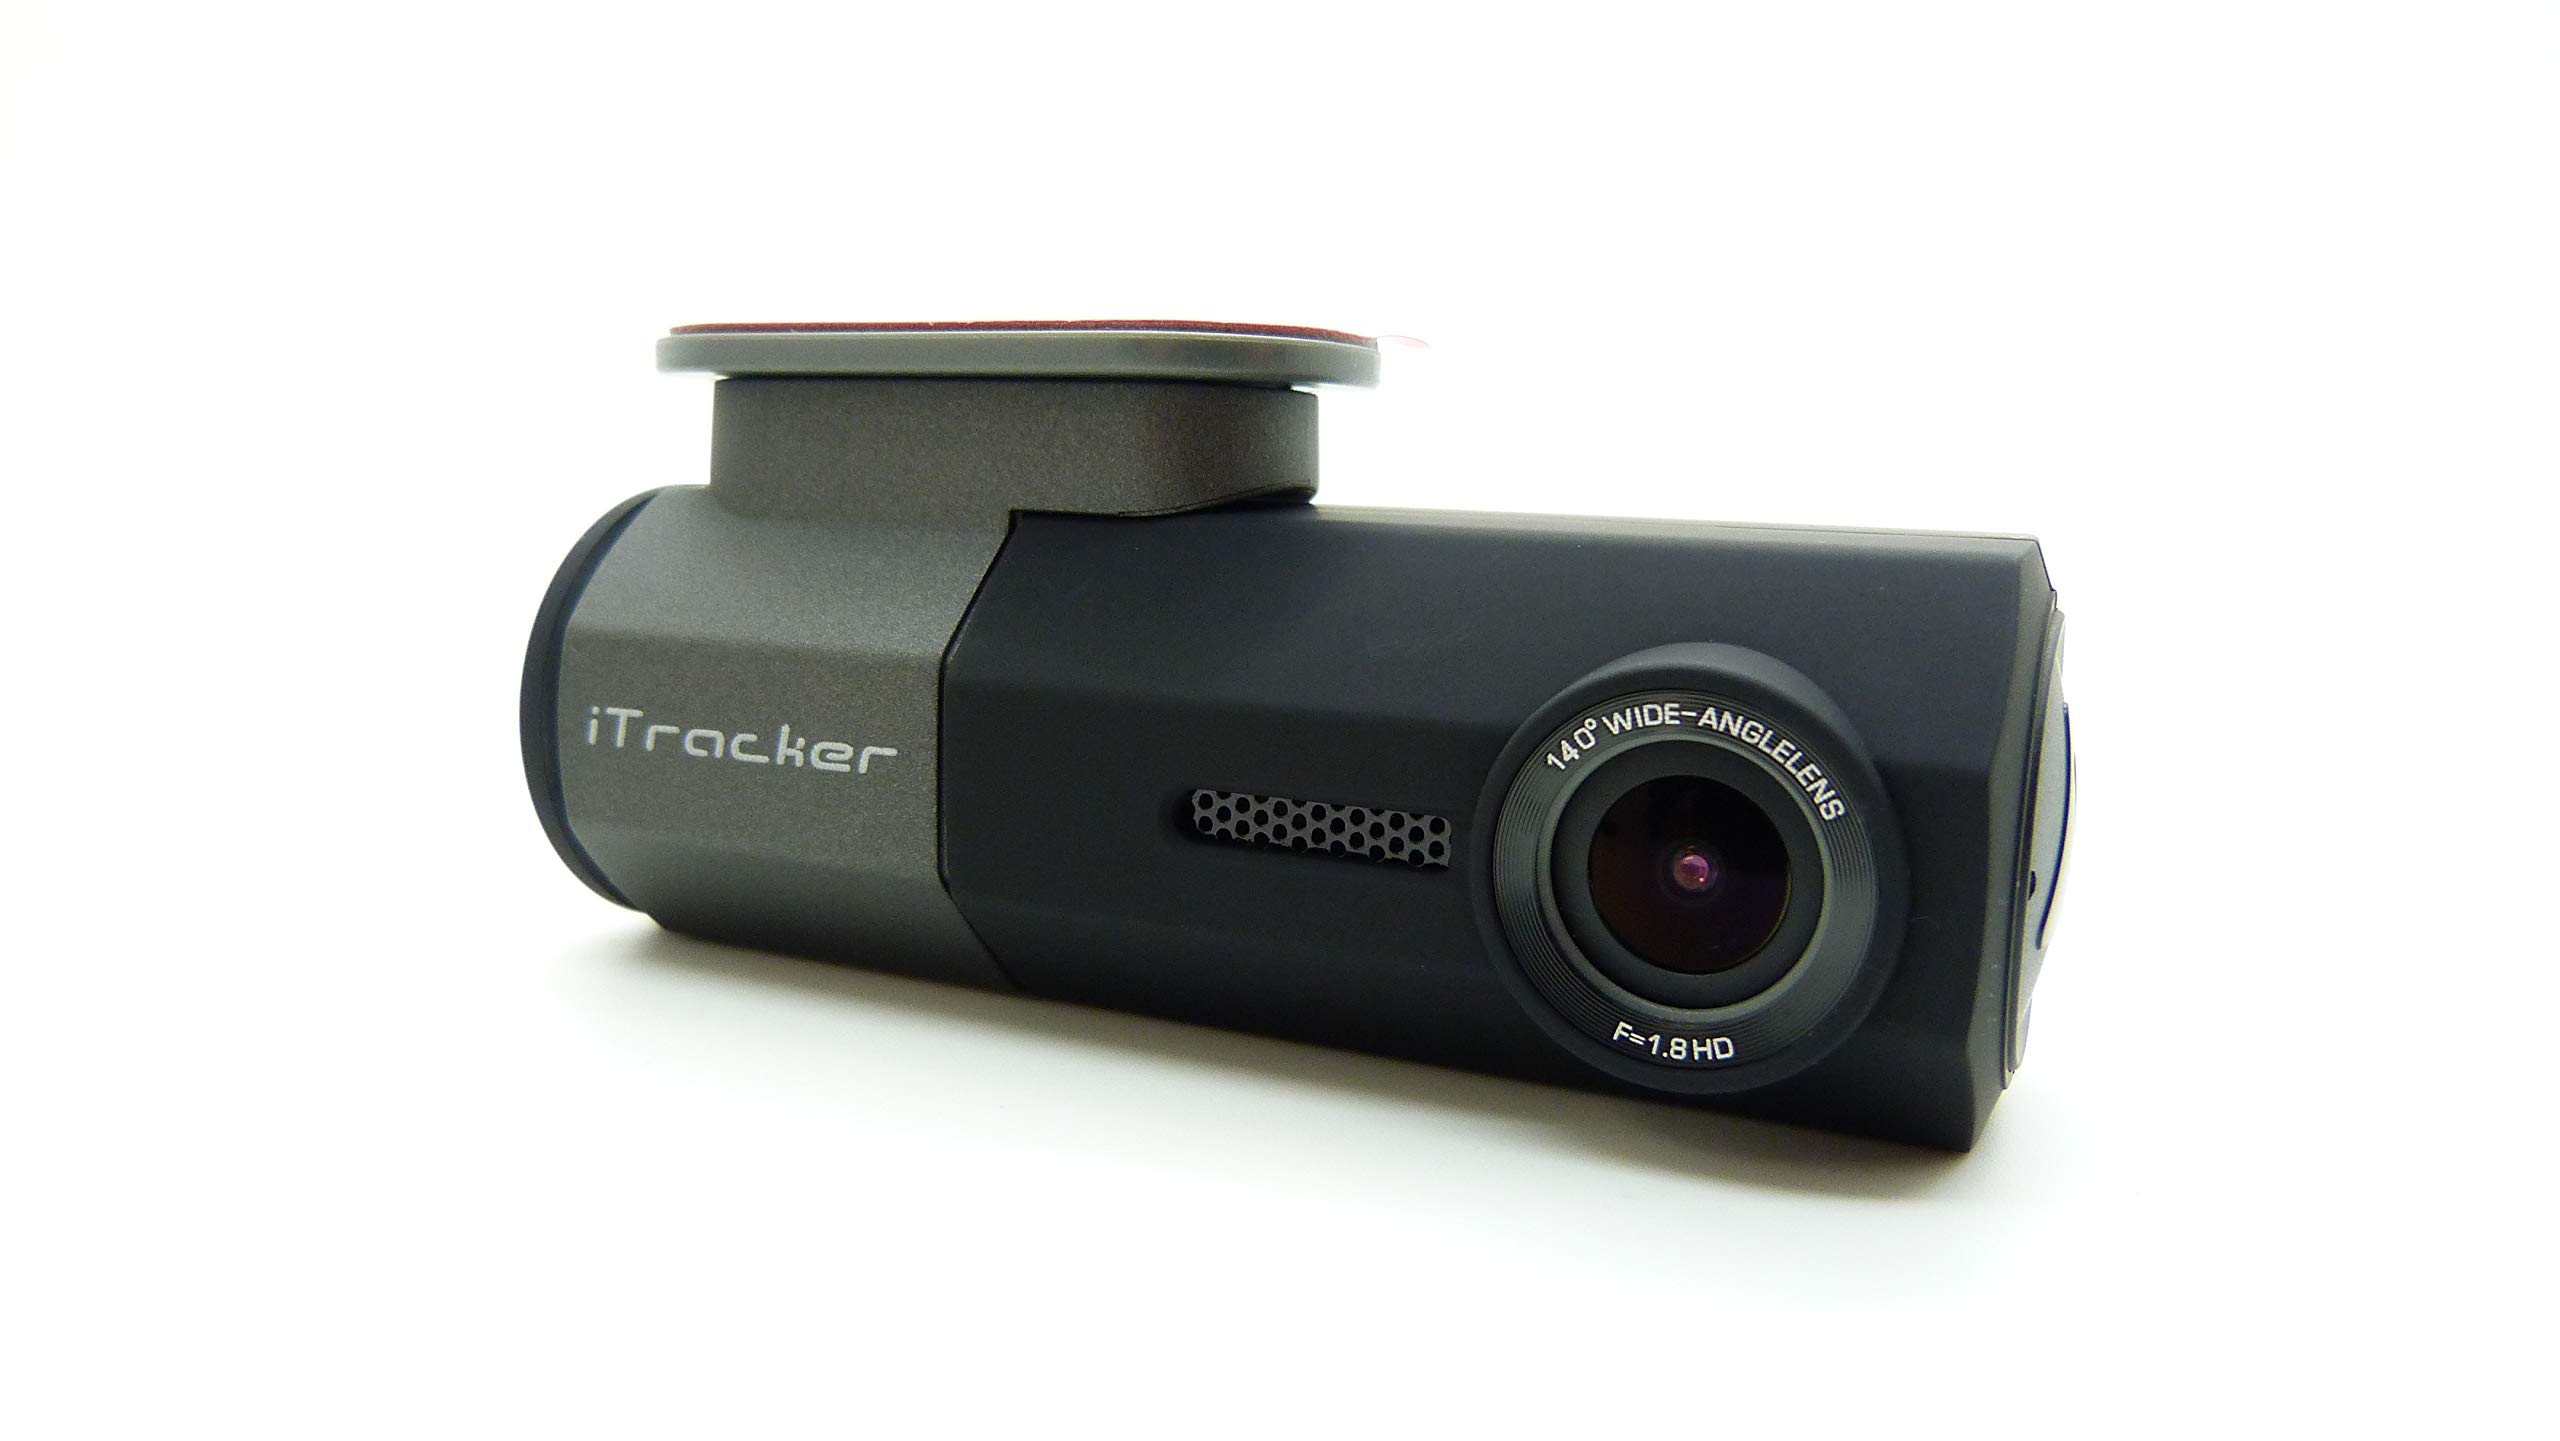 iTracker-Dashcam-GPS-Carcam-Autokamera-Full-HD-Dash-Cam-mini0806-S-mini0906